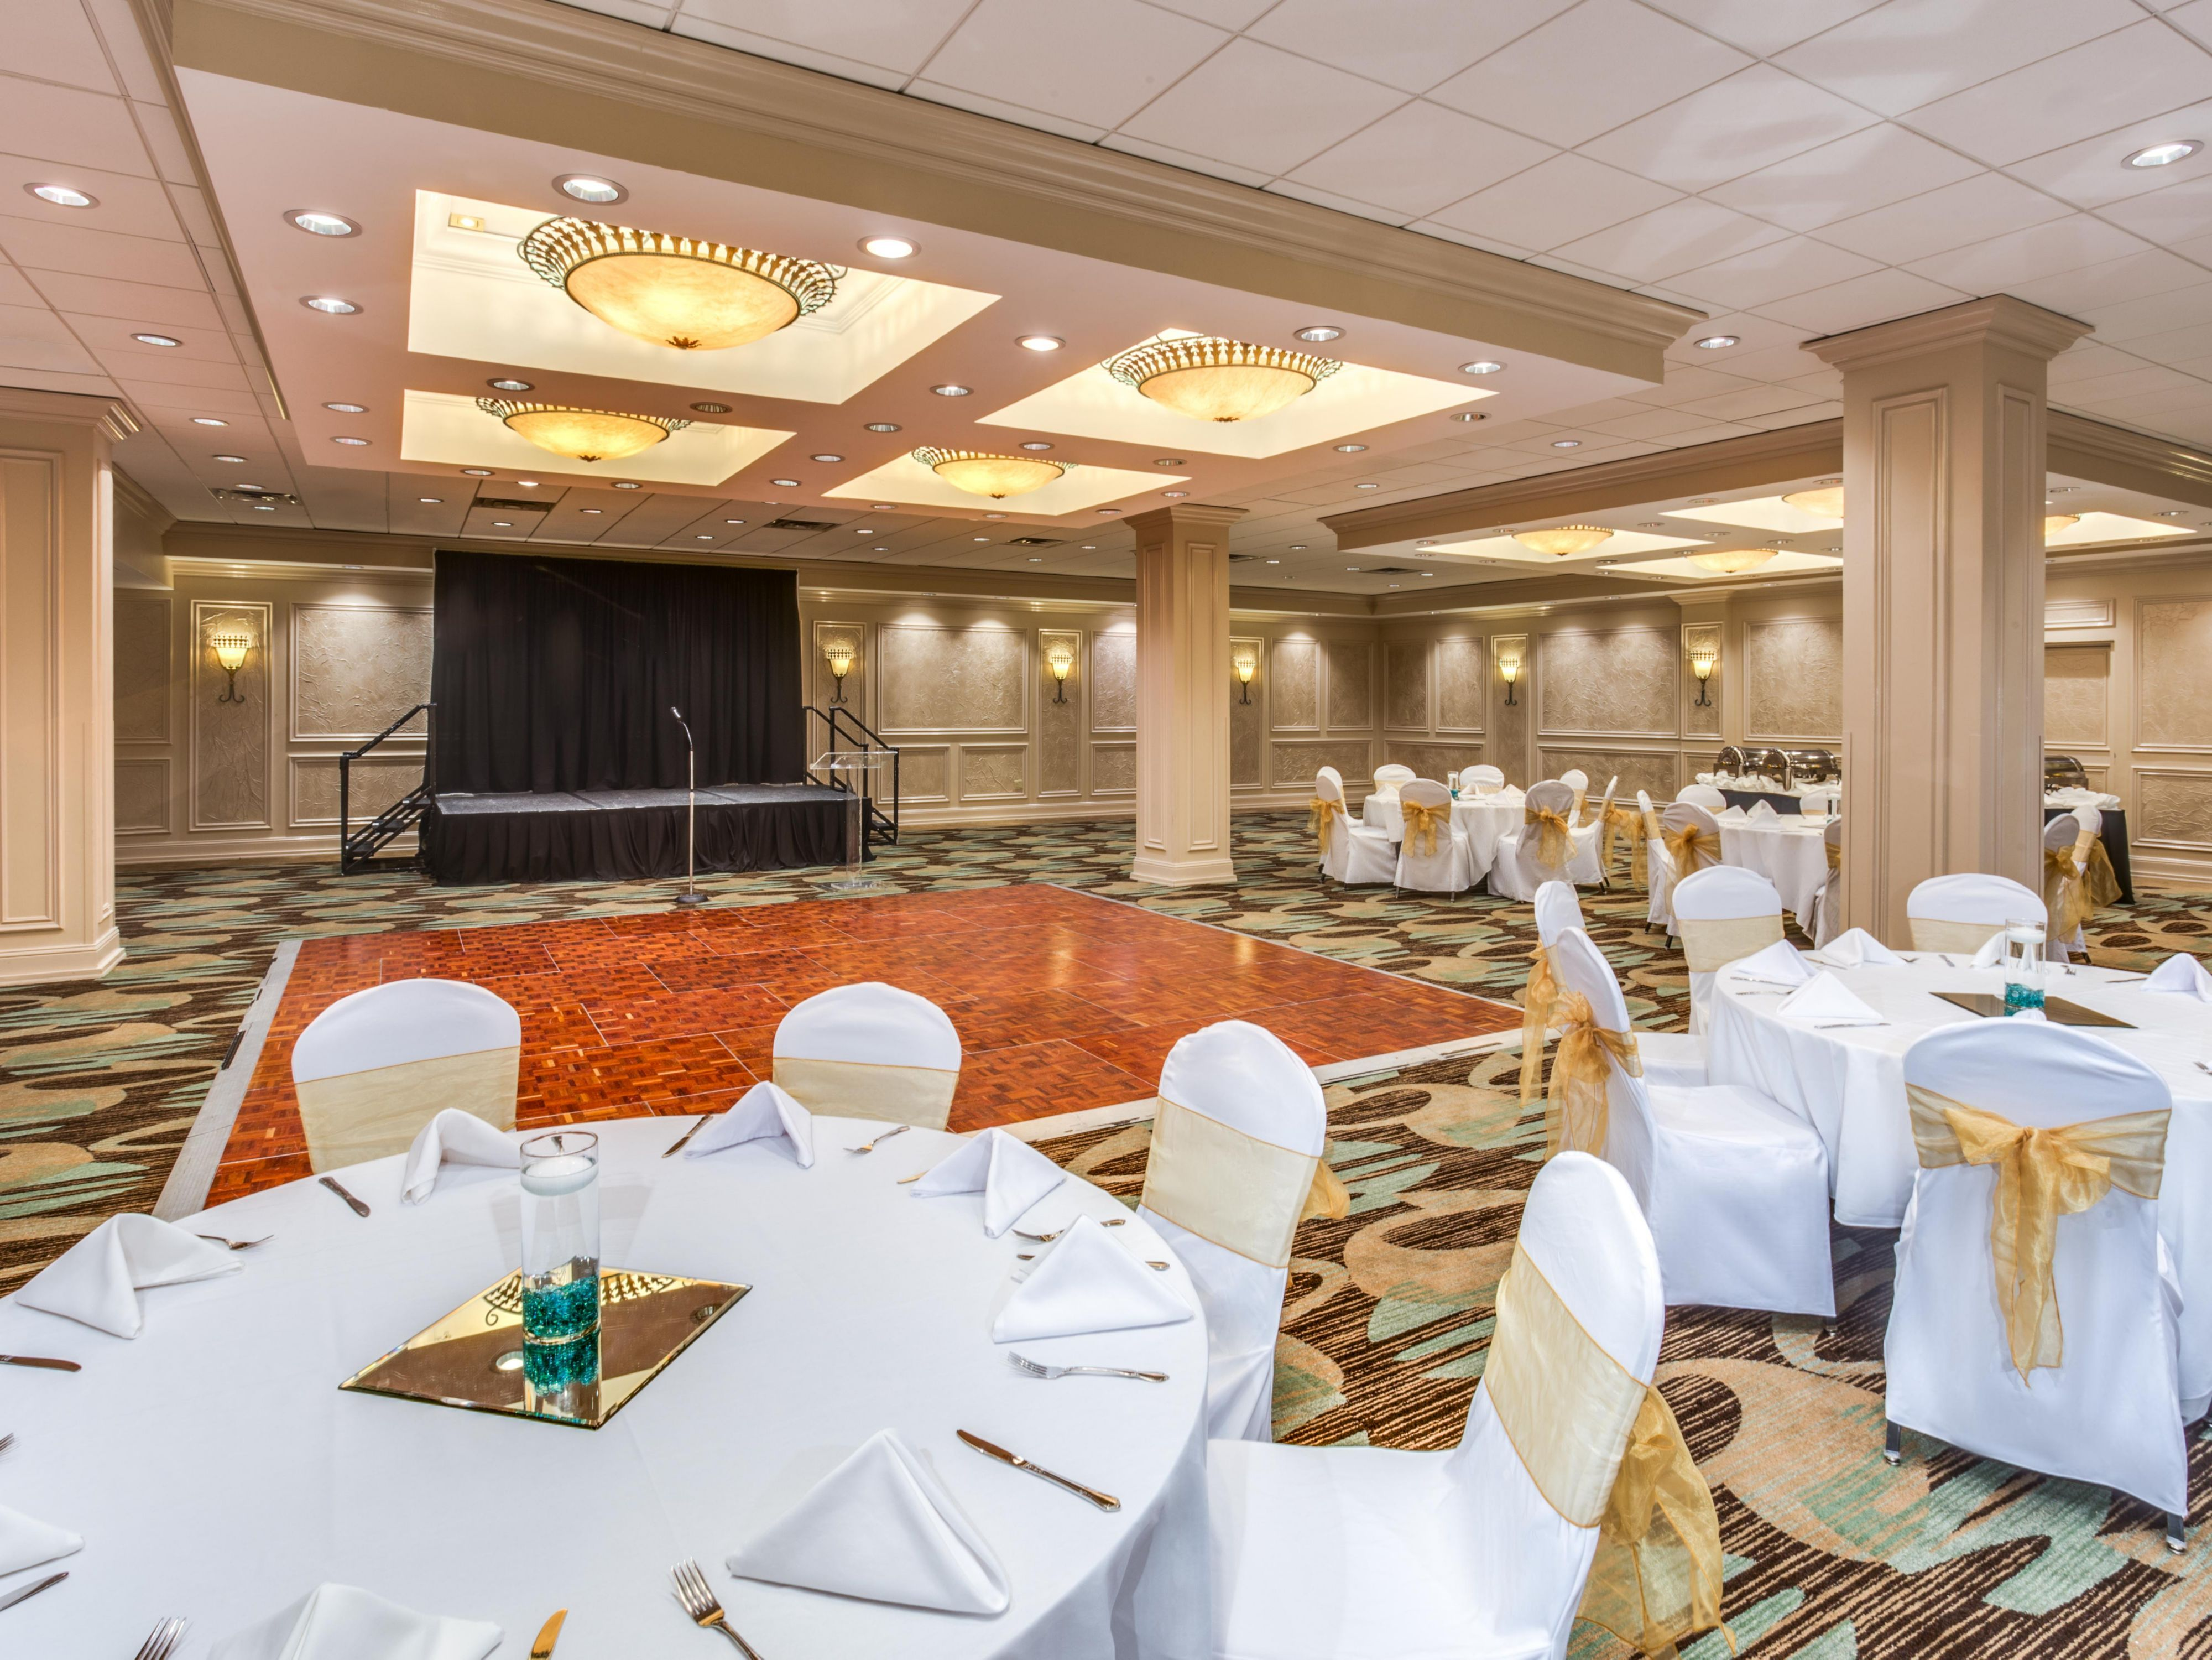 Crowne Plaza Executive Center Baton Rouge Hotel Meeting Rooms For